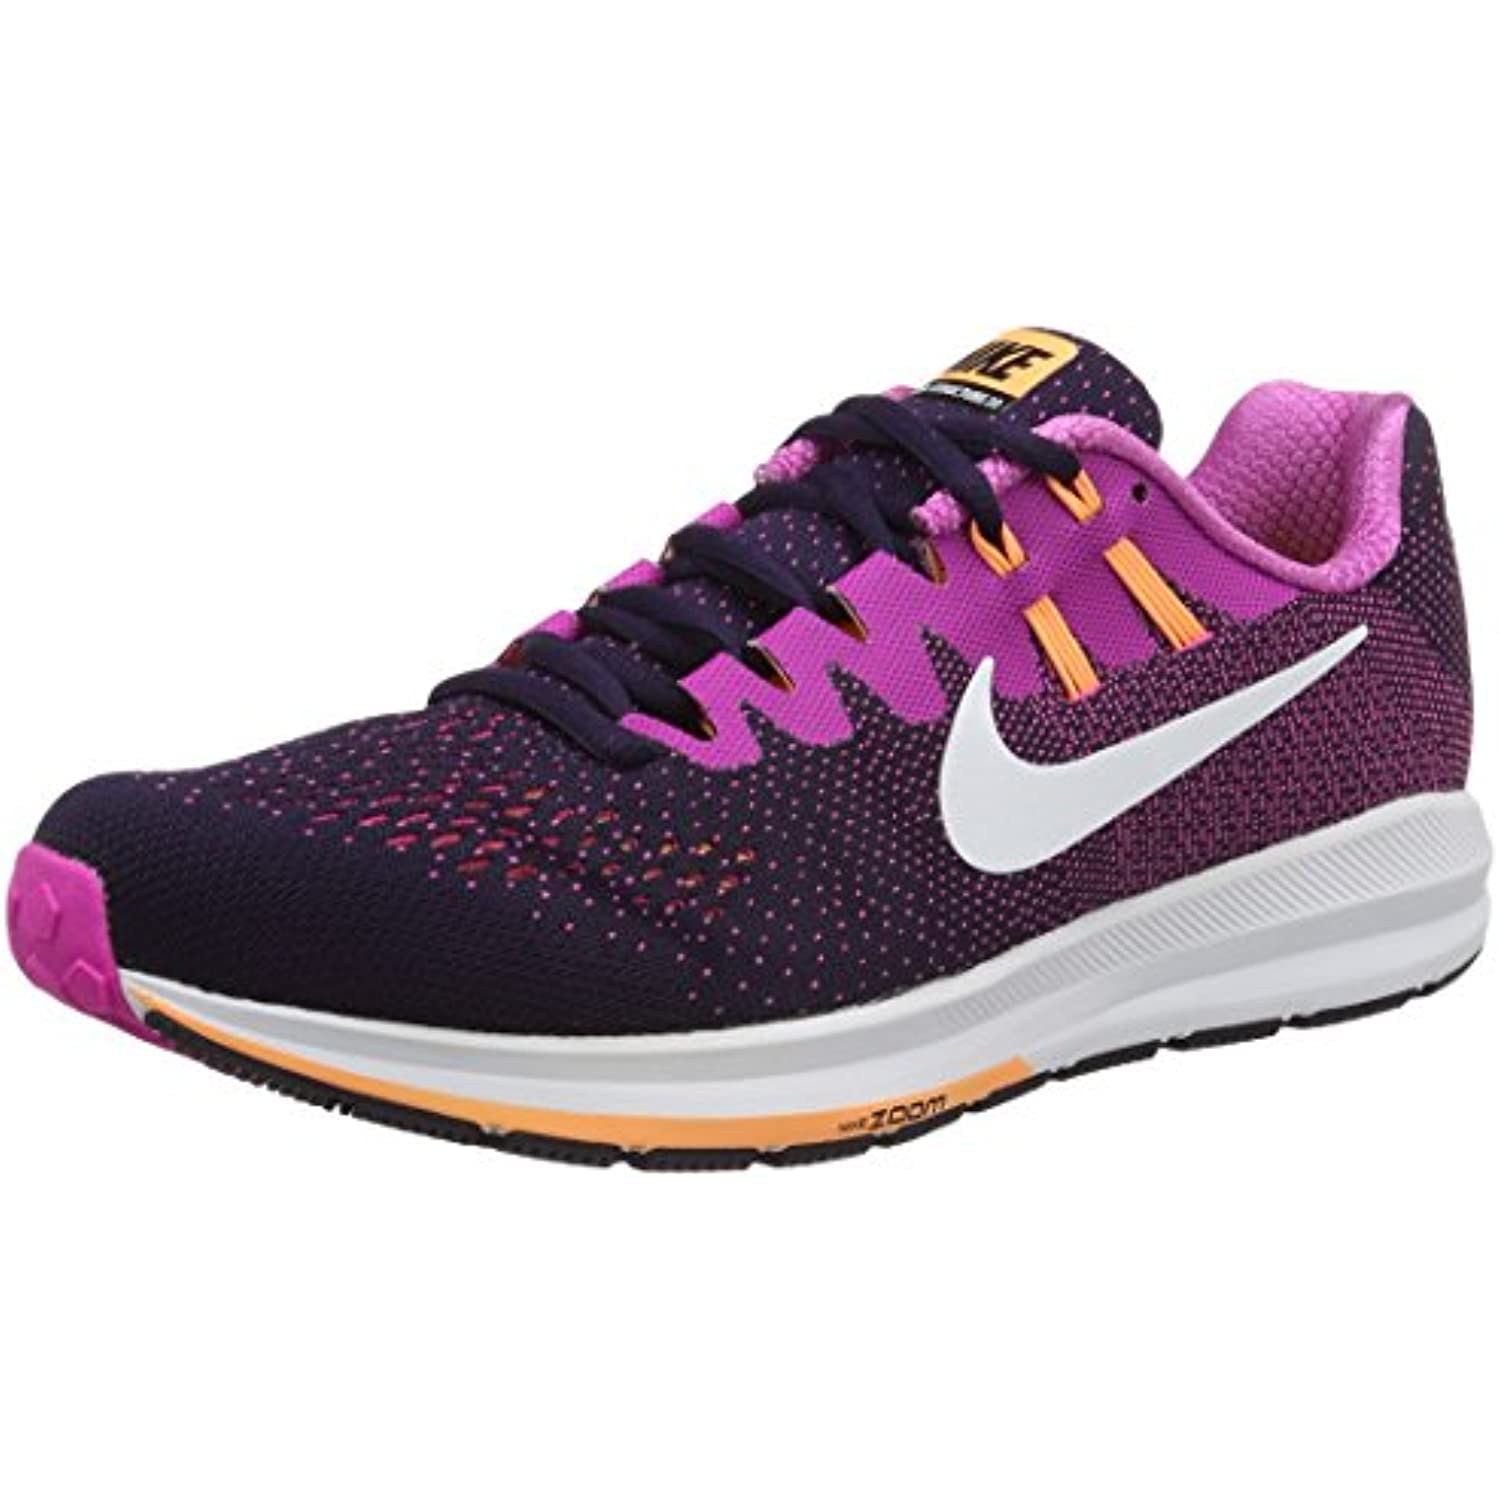 NIKE 20, Femme Air Zoom Structure 20, NIKE Chaussures de Running EntraineHommest Femme - B01LXK8TRN - 7e9359